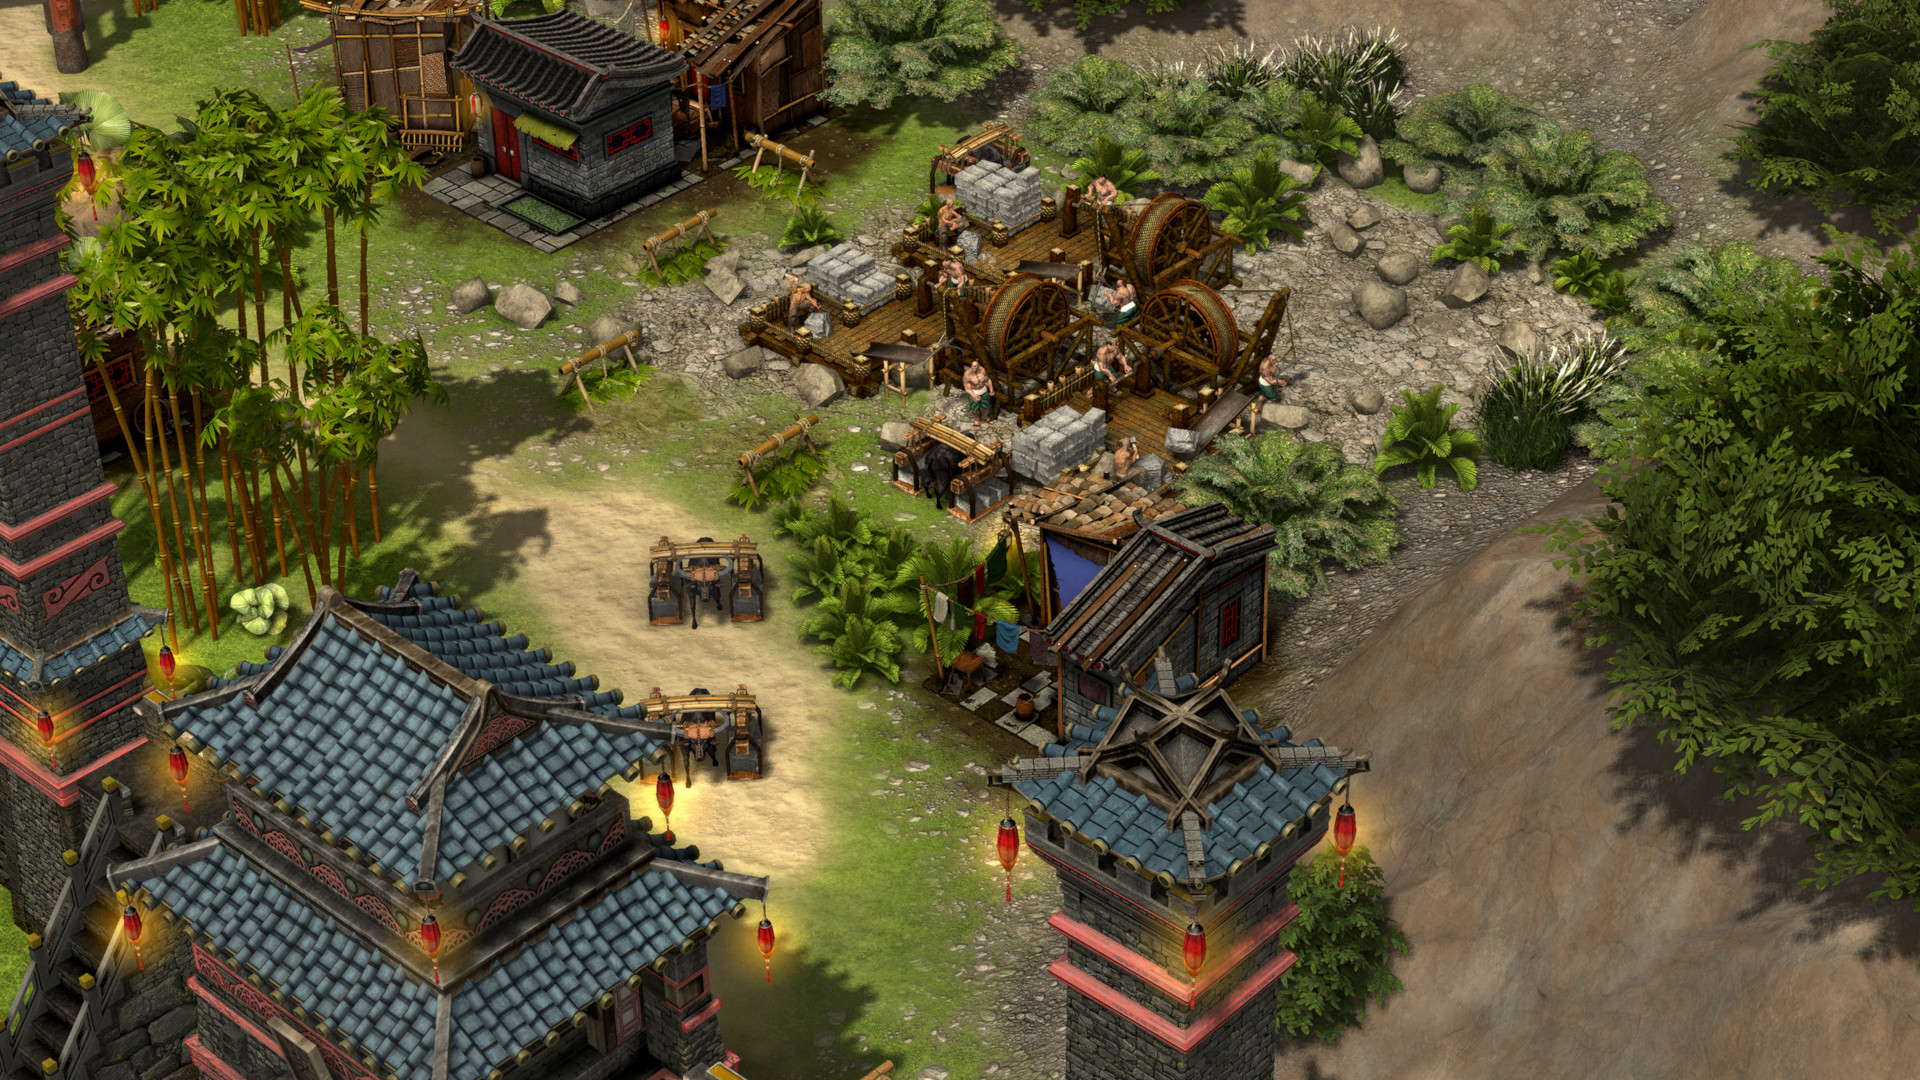 Quelle: FireFly Studios - Stronghold: Warlords - Steinbruch